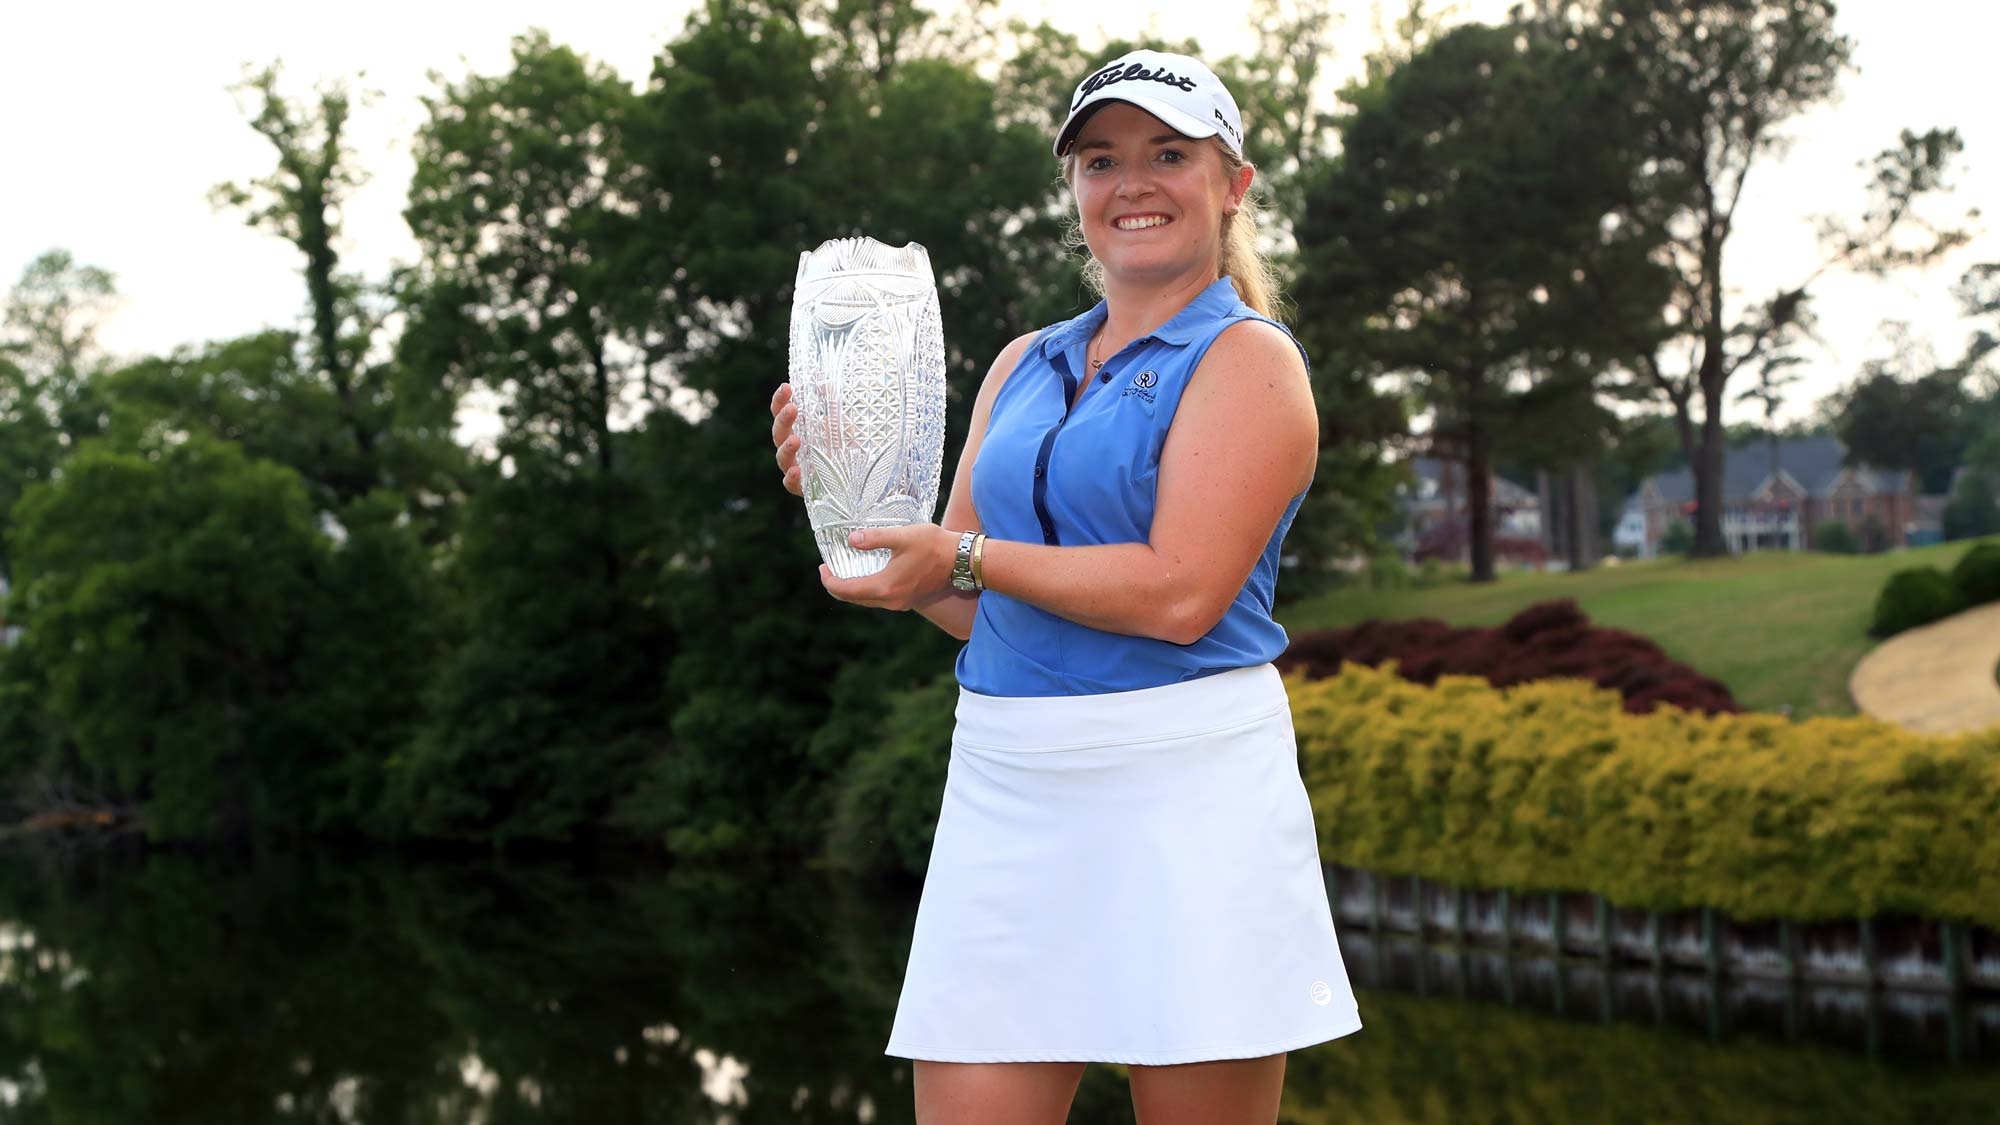 Bronte Law has her #BagsPacked for the 2020 Diamond Resorts Tournament of Champions after her victory at the 2019 Pure Silk Championship